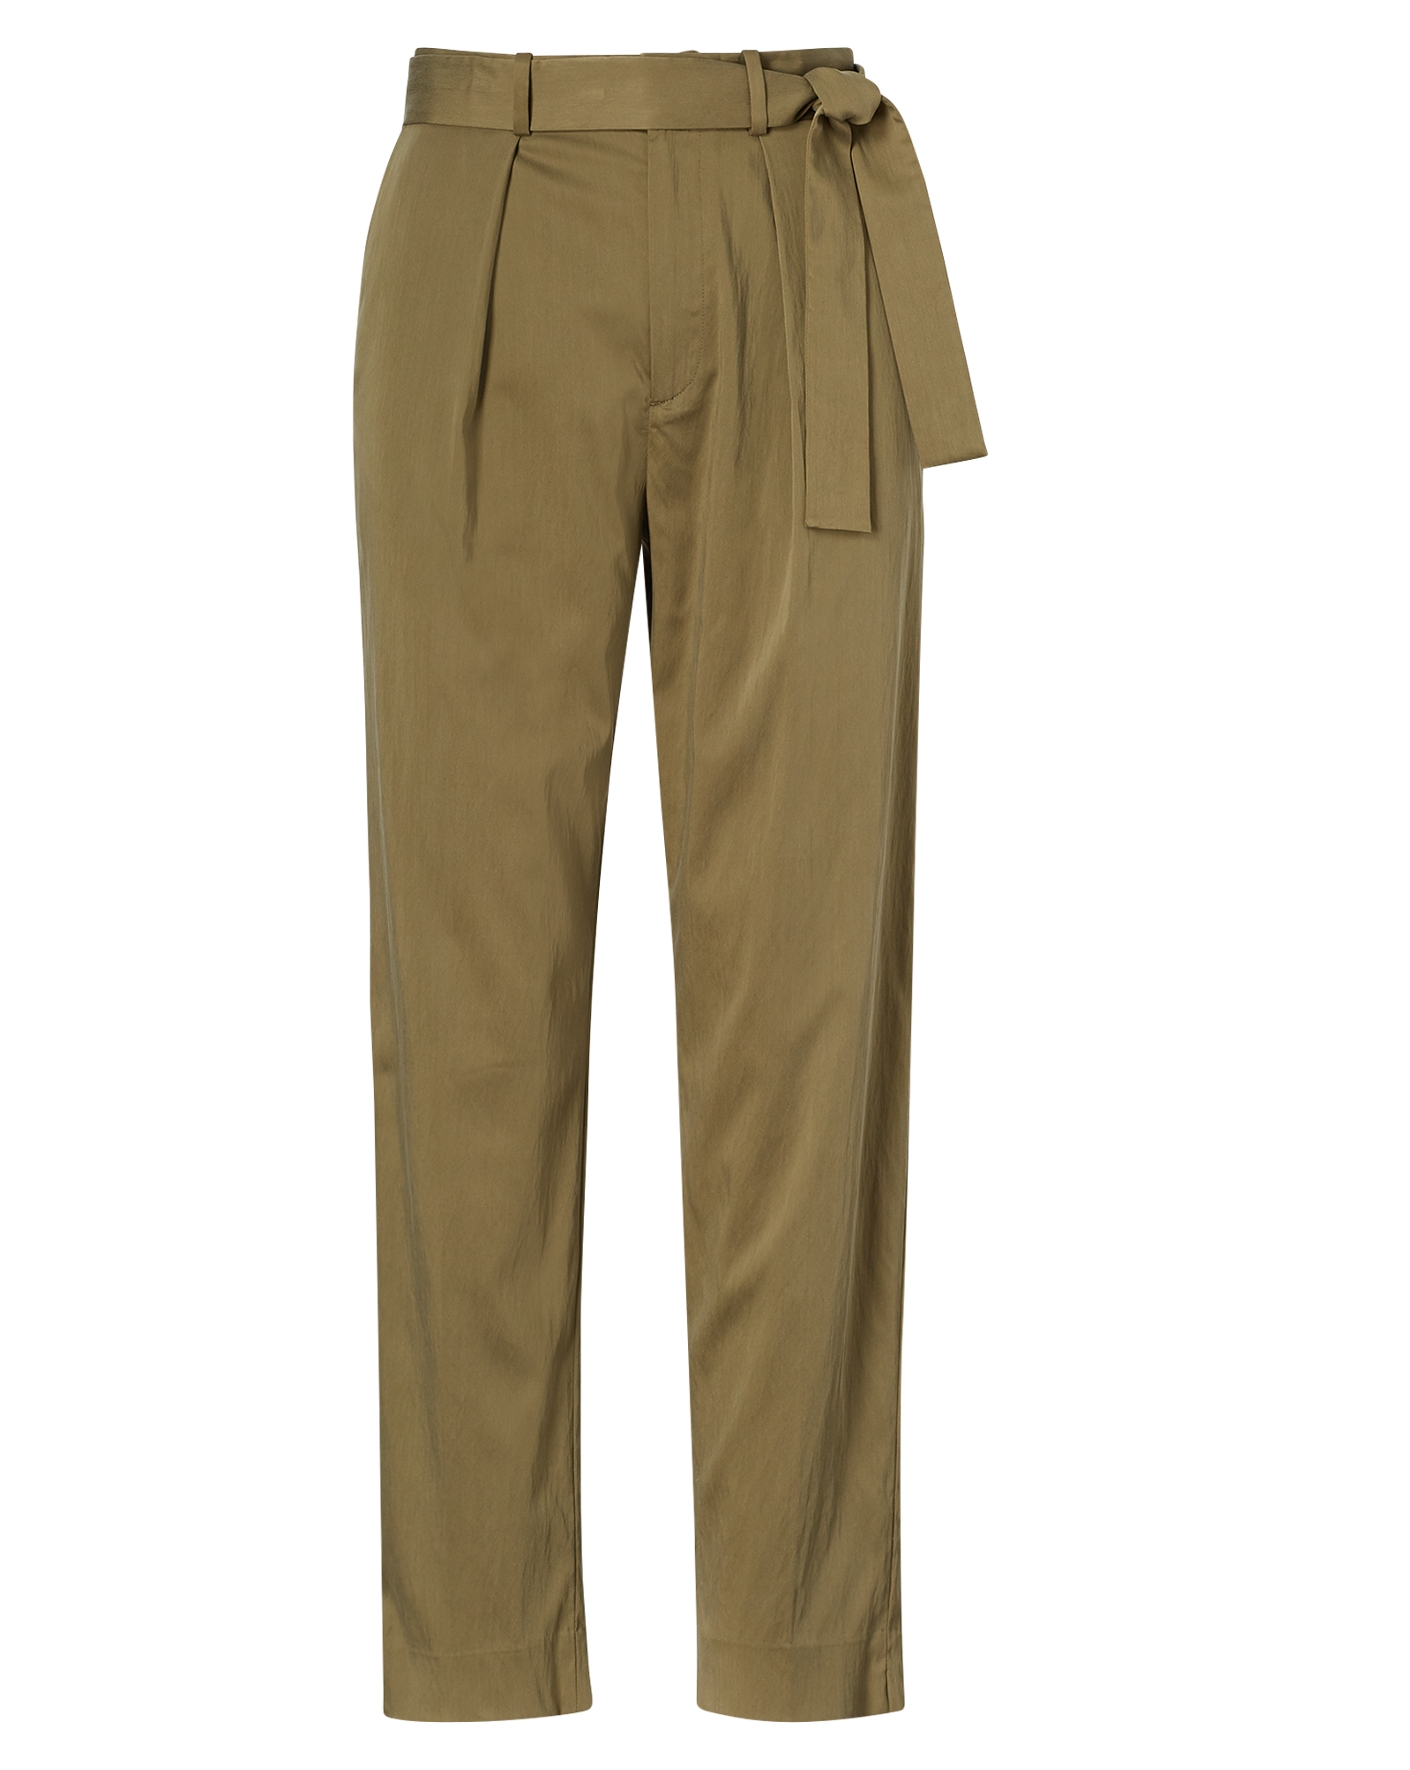 785db0367afd9 Pants & Denim Sale | Women's Clothing Sale | Ralph Lauren